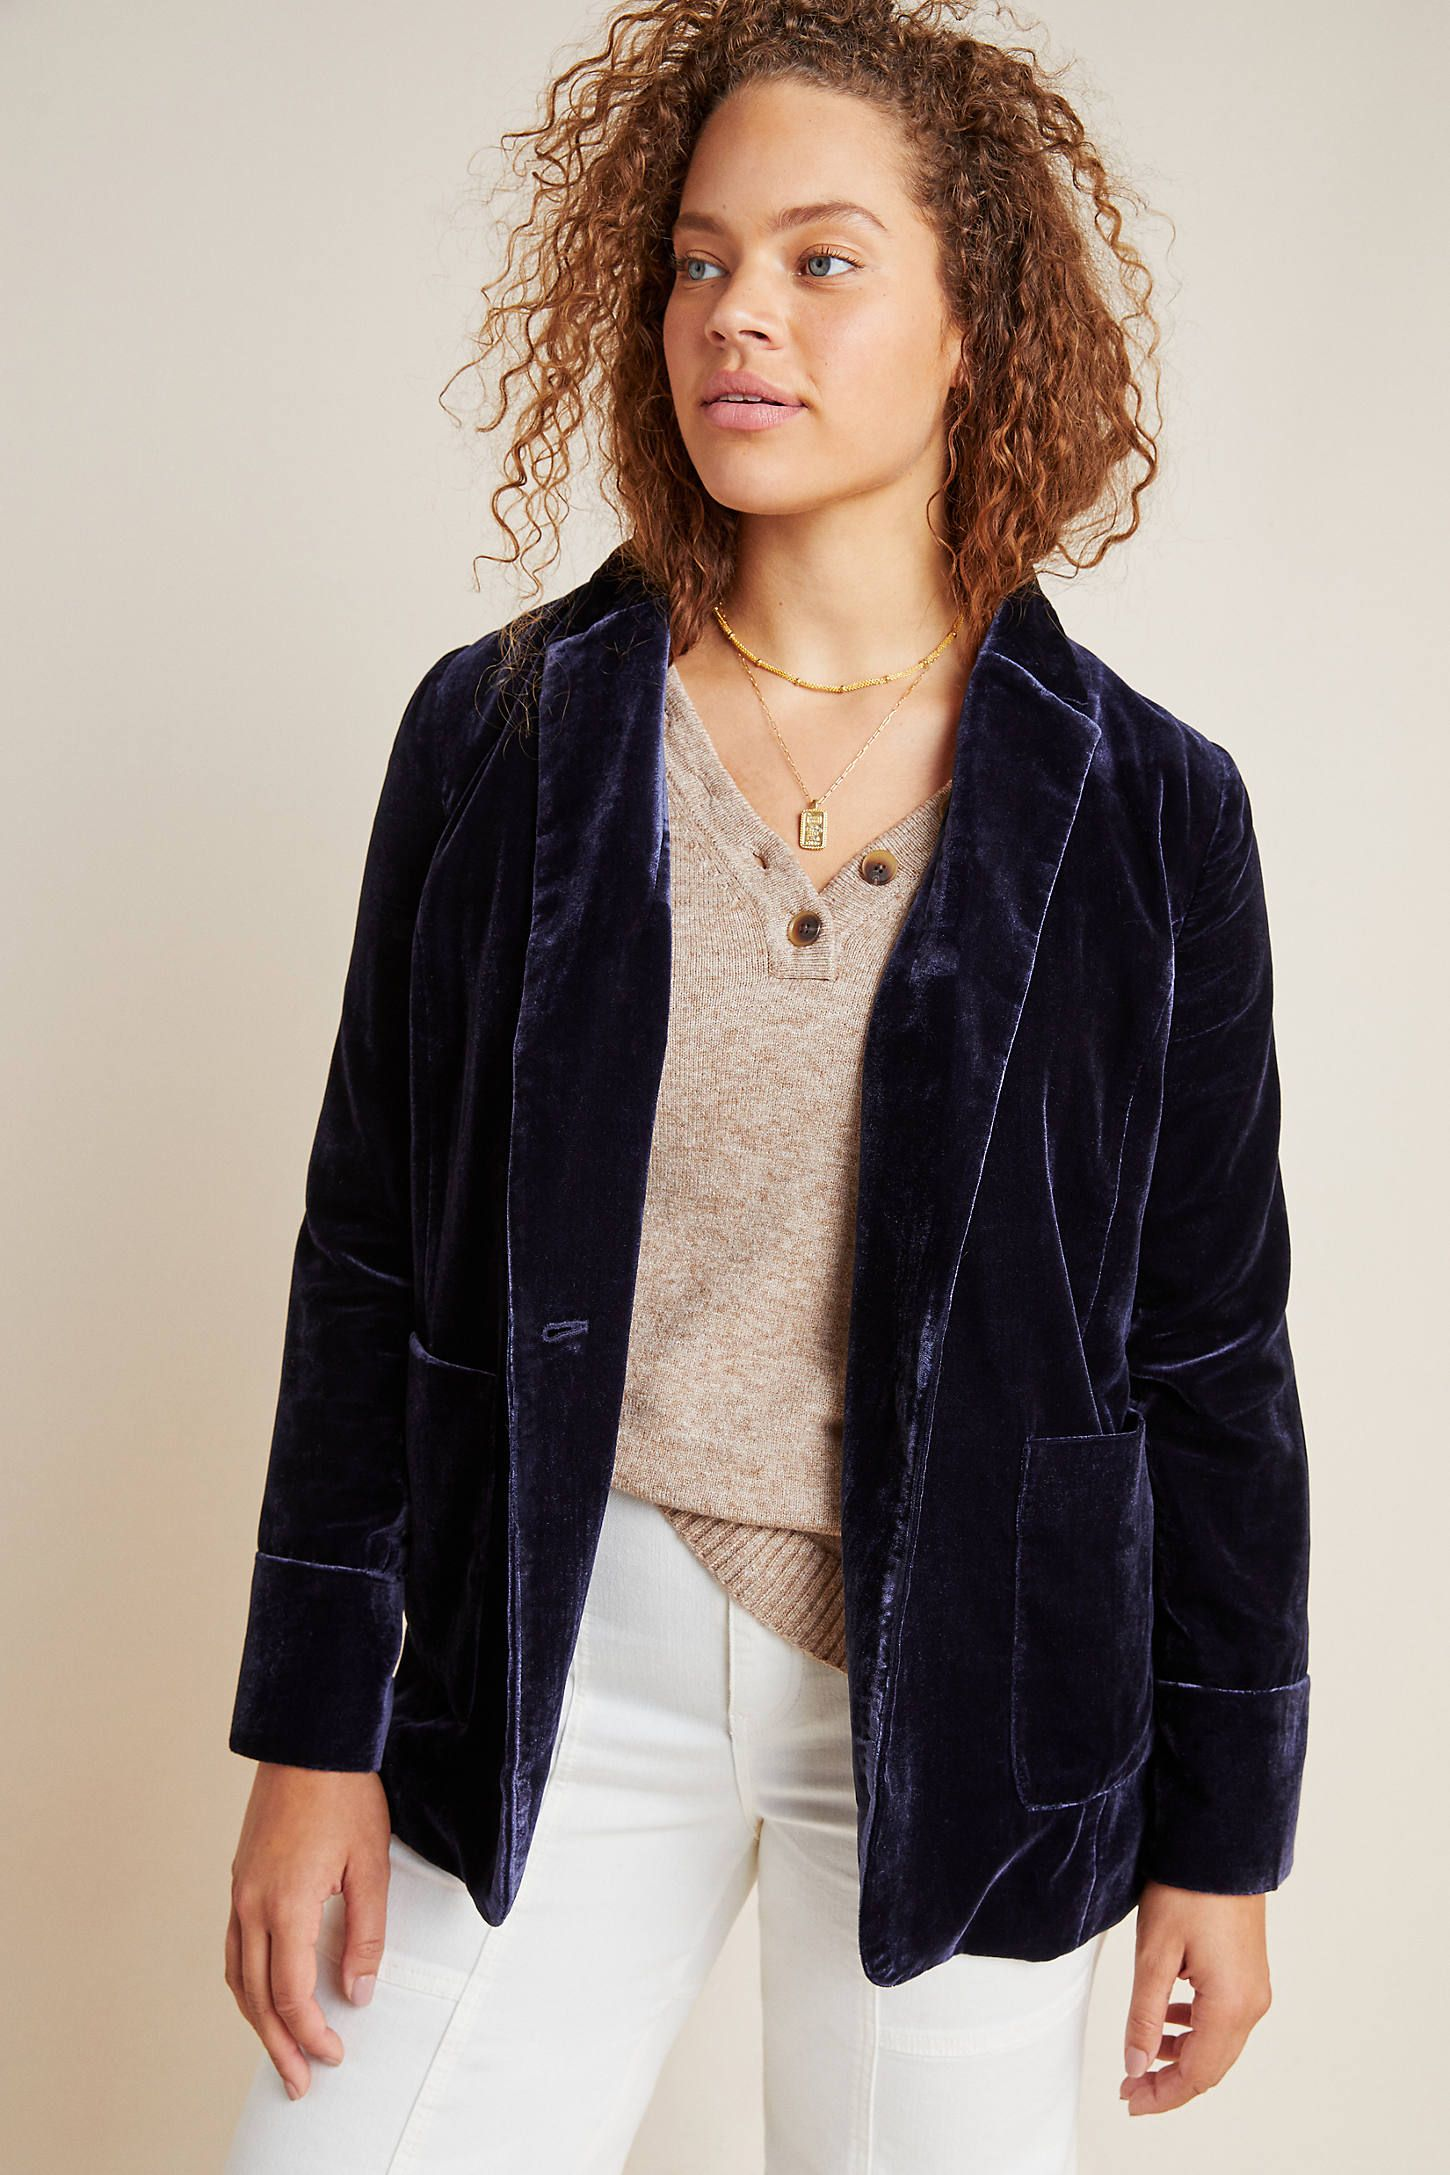 Micah Velvet Blazer by Kachel in Blue Size: 10, Women's Jackets at Anthropologie